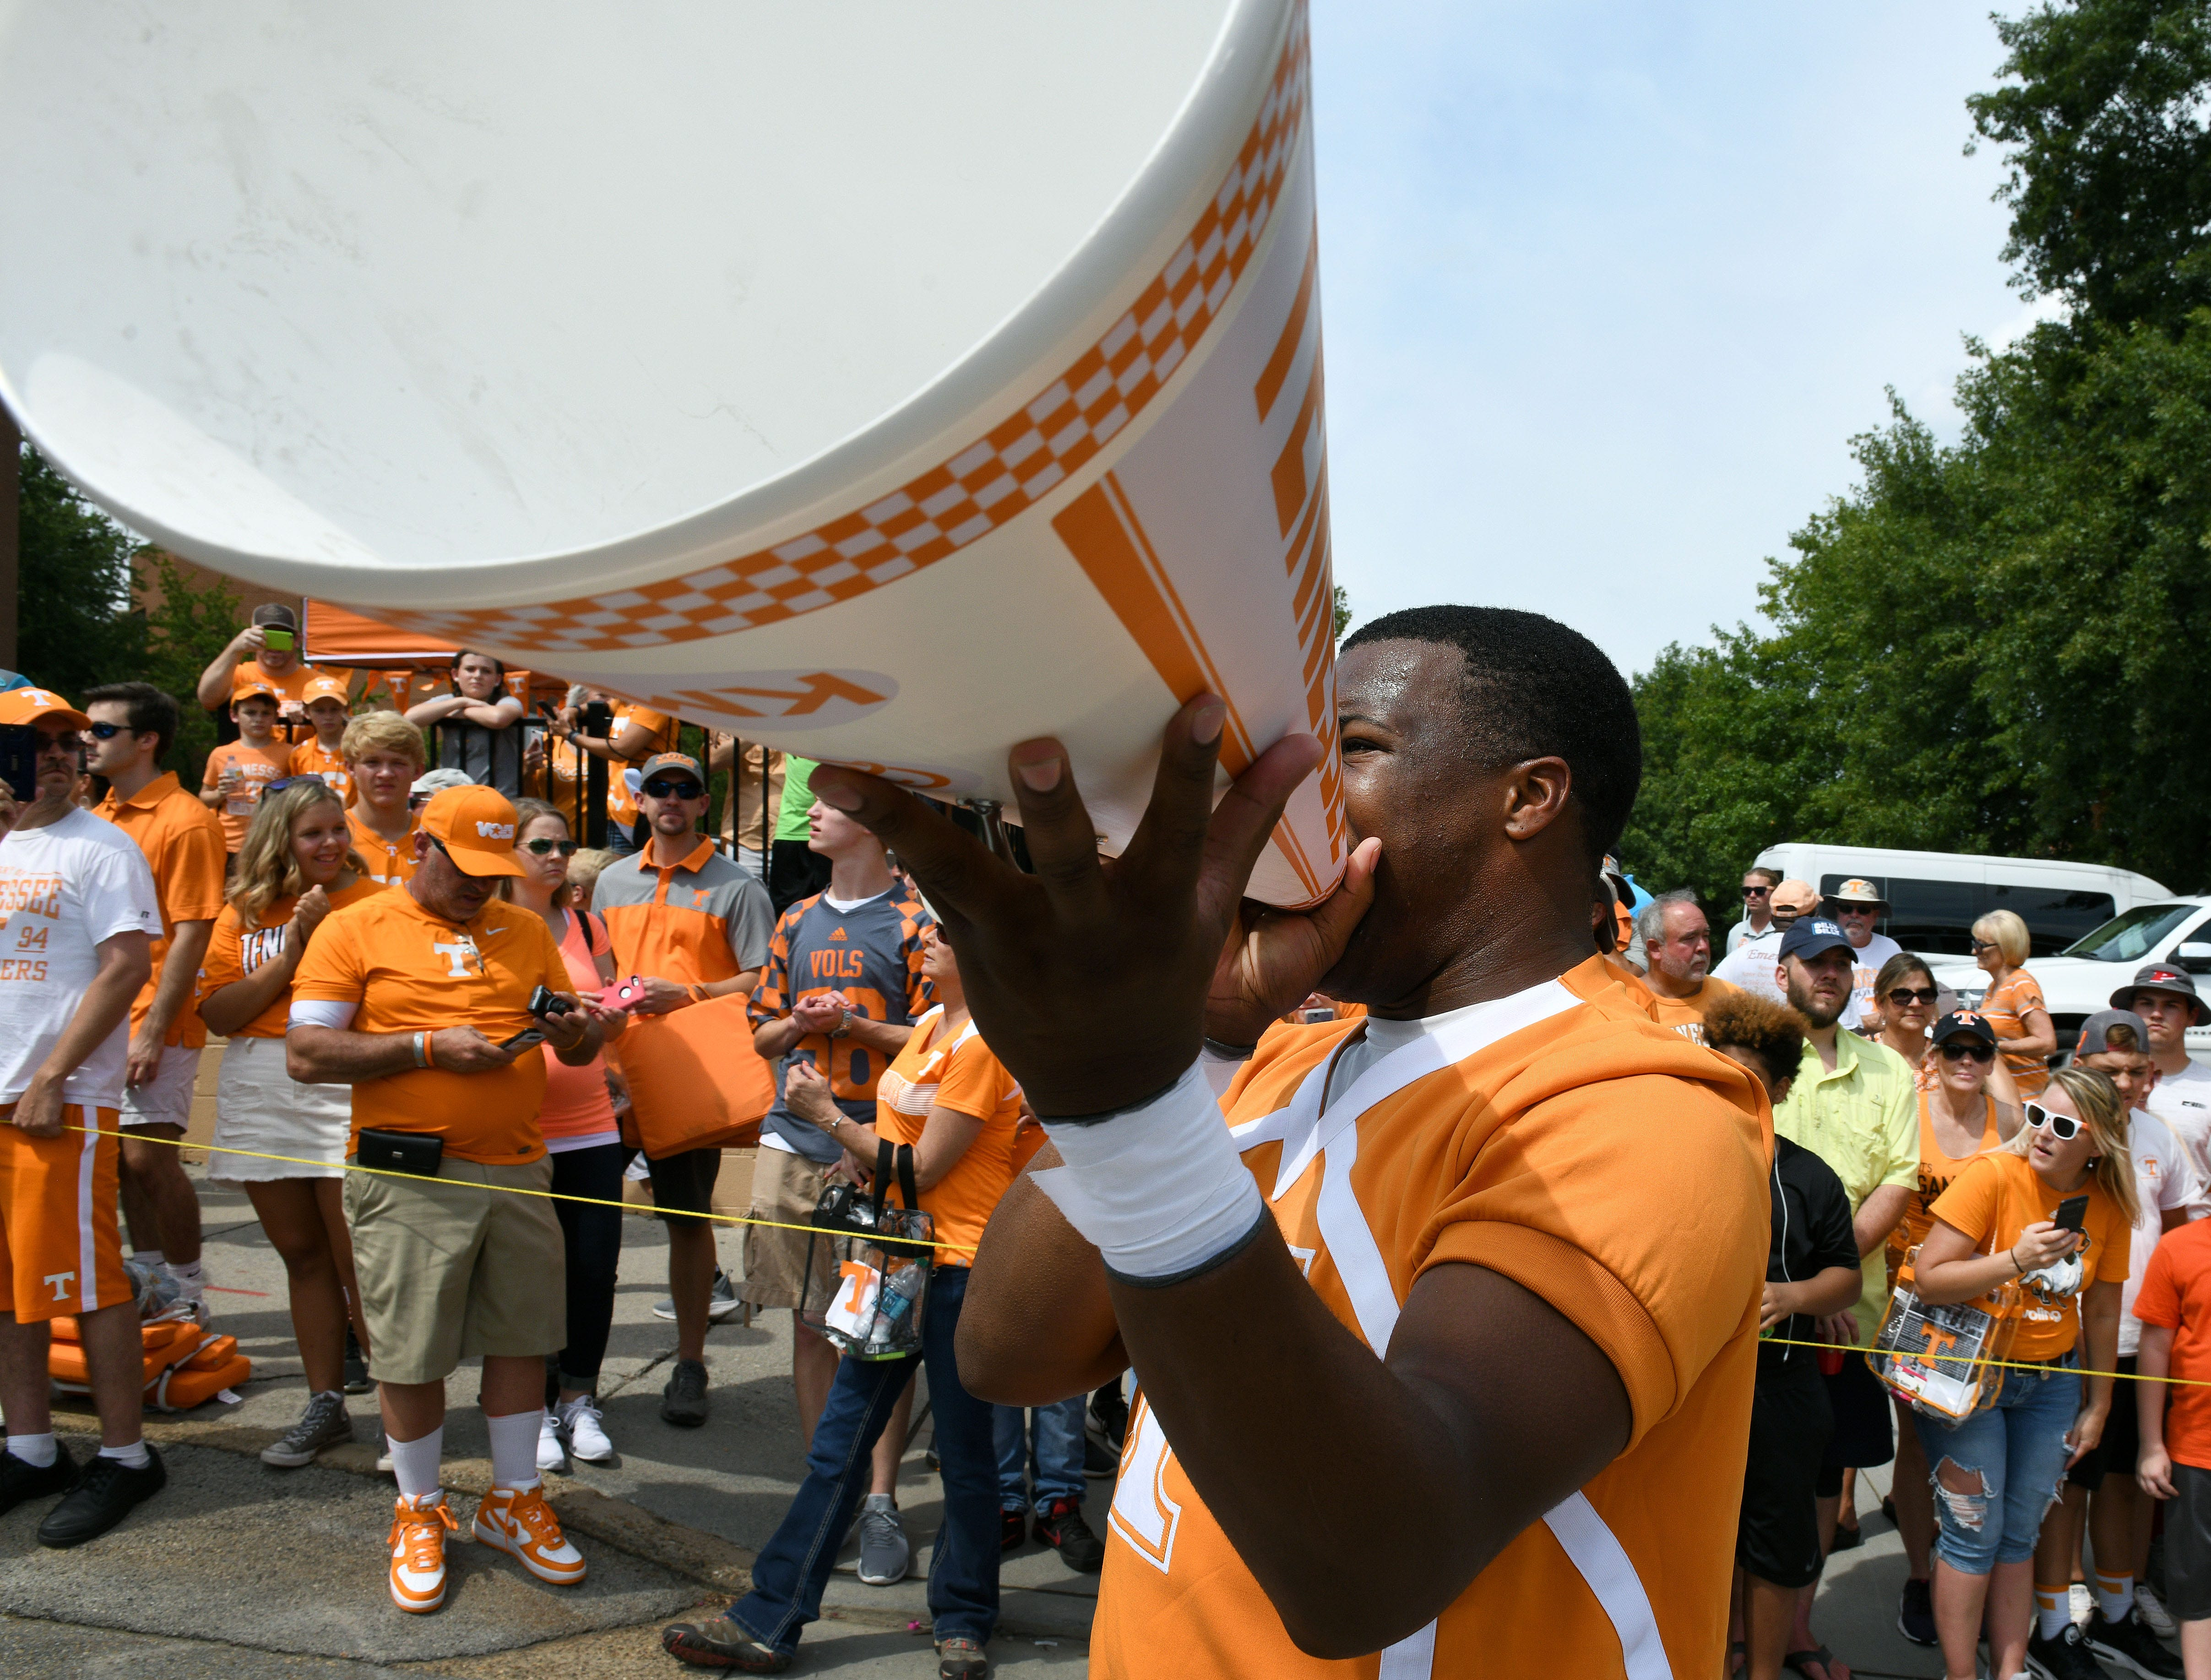 Tennessee cheerleader Kahlil Bostick preparing fans for the Vol Walk  before the East Tennessee State game Saturday, September 8, 2018 at Neyland Stadium in Knoxville, Tenn.